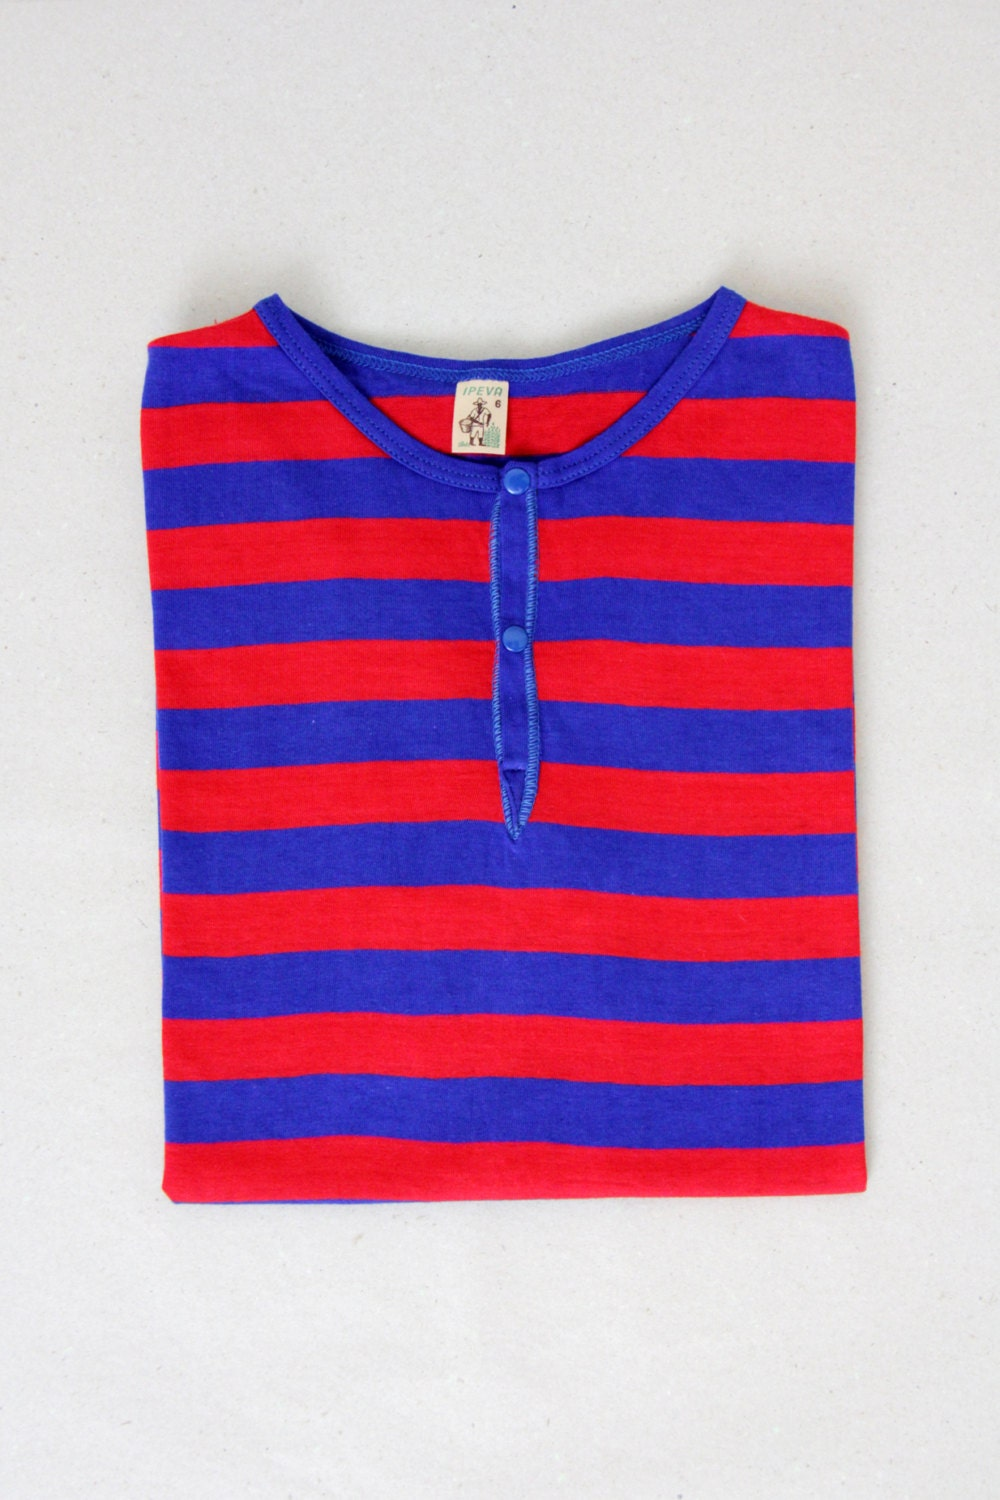 Vintage tshirt blue and red striped shirt sailor shirt for Red blue striped shirt